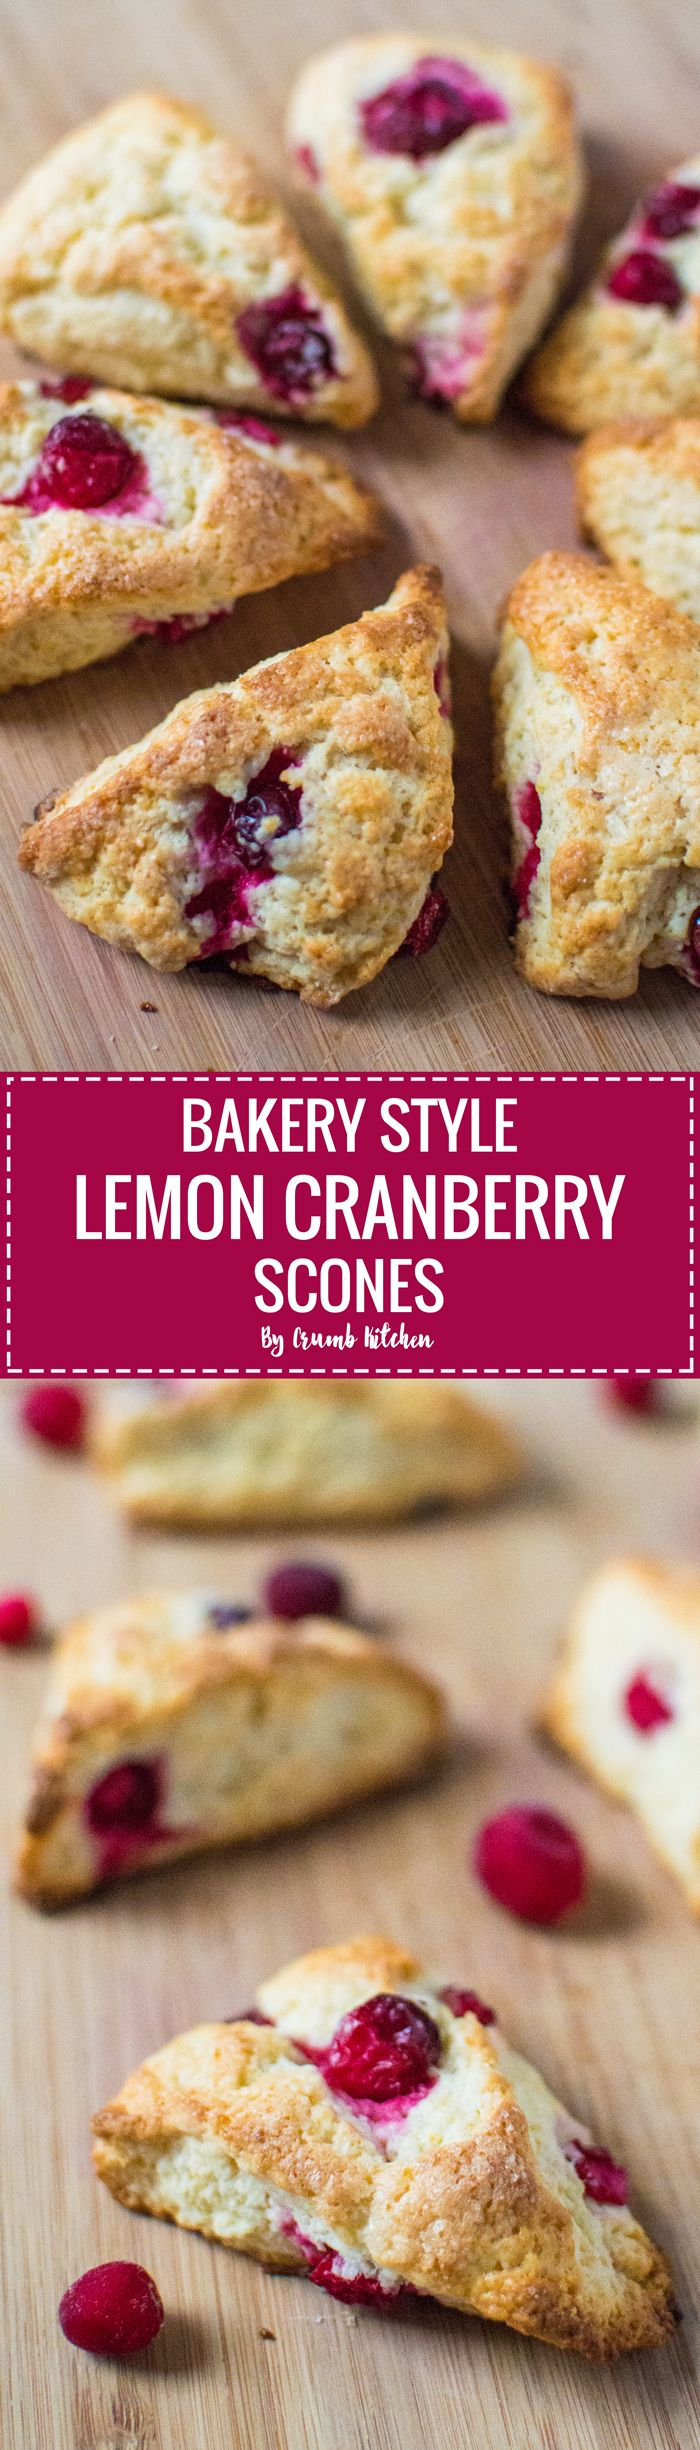 Plucked from the store window of your local bakery, these lemon cranberry scones are soft and fluffy inside with a crunchy sugar topping. | crumbkitchen.com